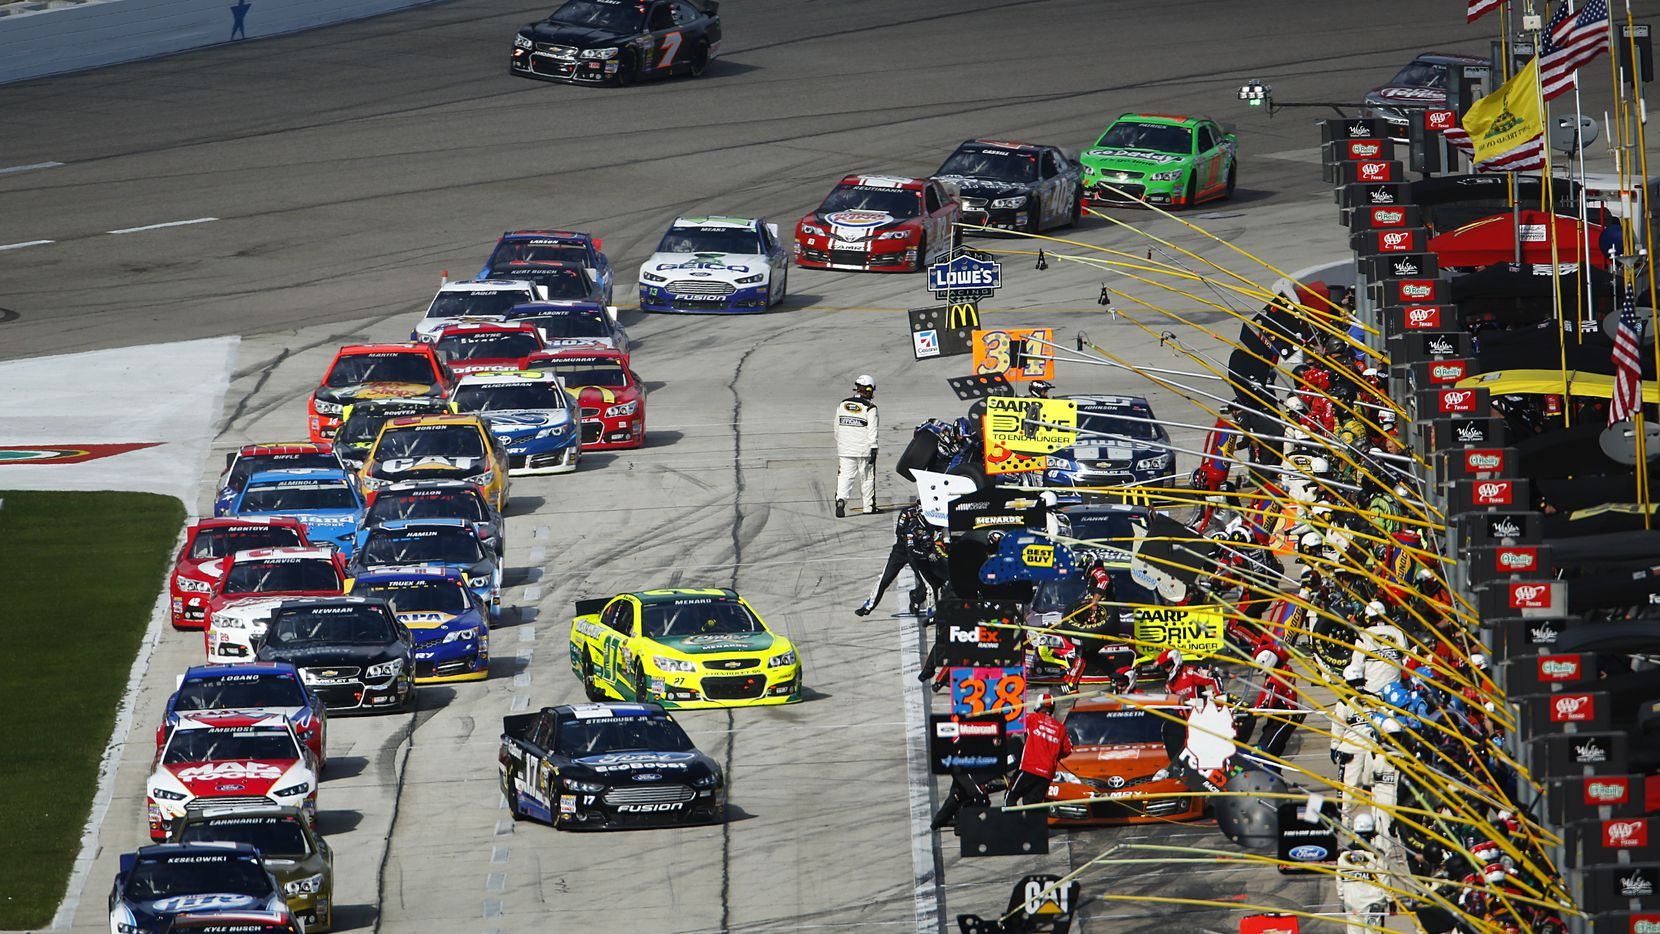 NASCAR Sprint Cup Series pull into their pits for a four-tire change during the first pit stop in the AAA 500 at the Texas Motor Speedway in Fort Worth, Sunday, November 3, 2013.